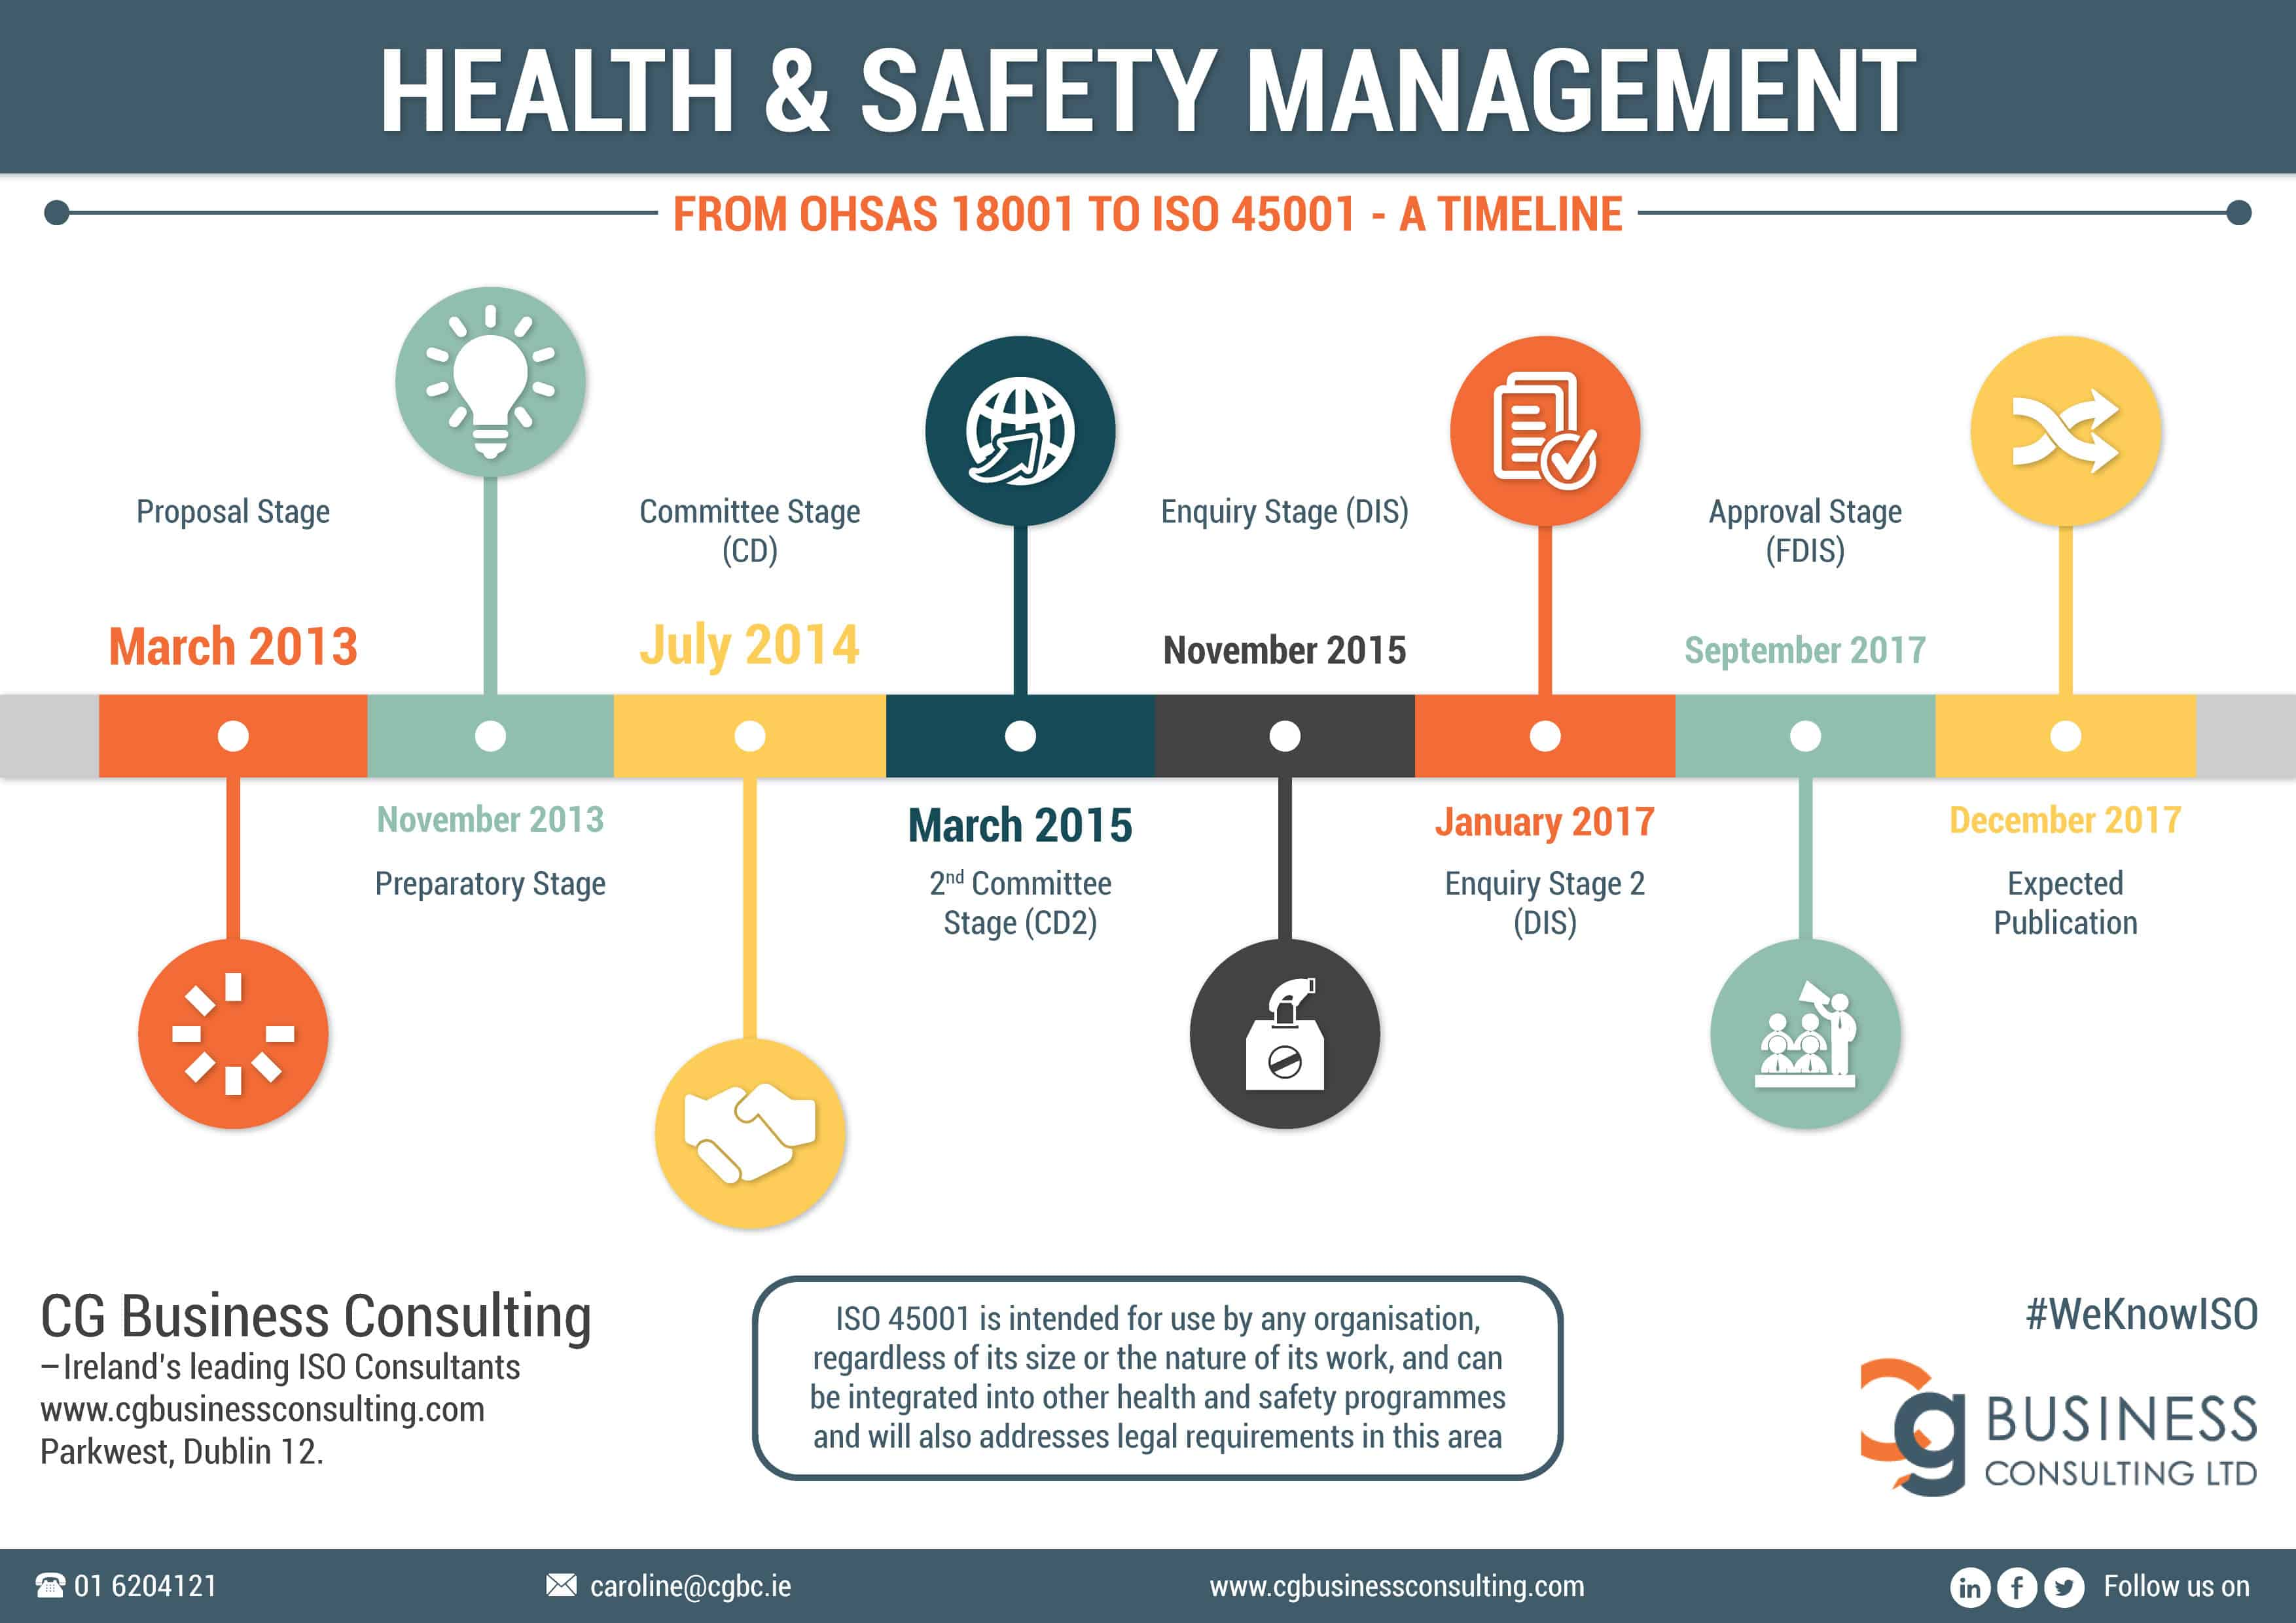 From OHSAS 18001 to ISO 45001 ...